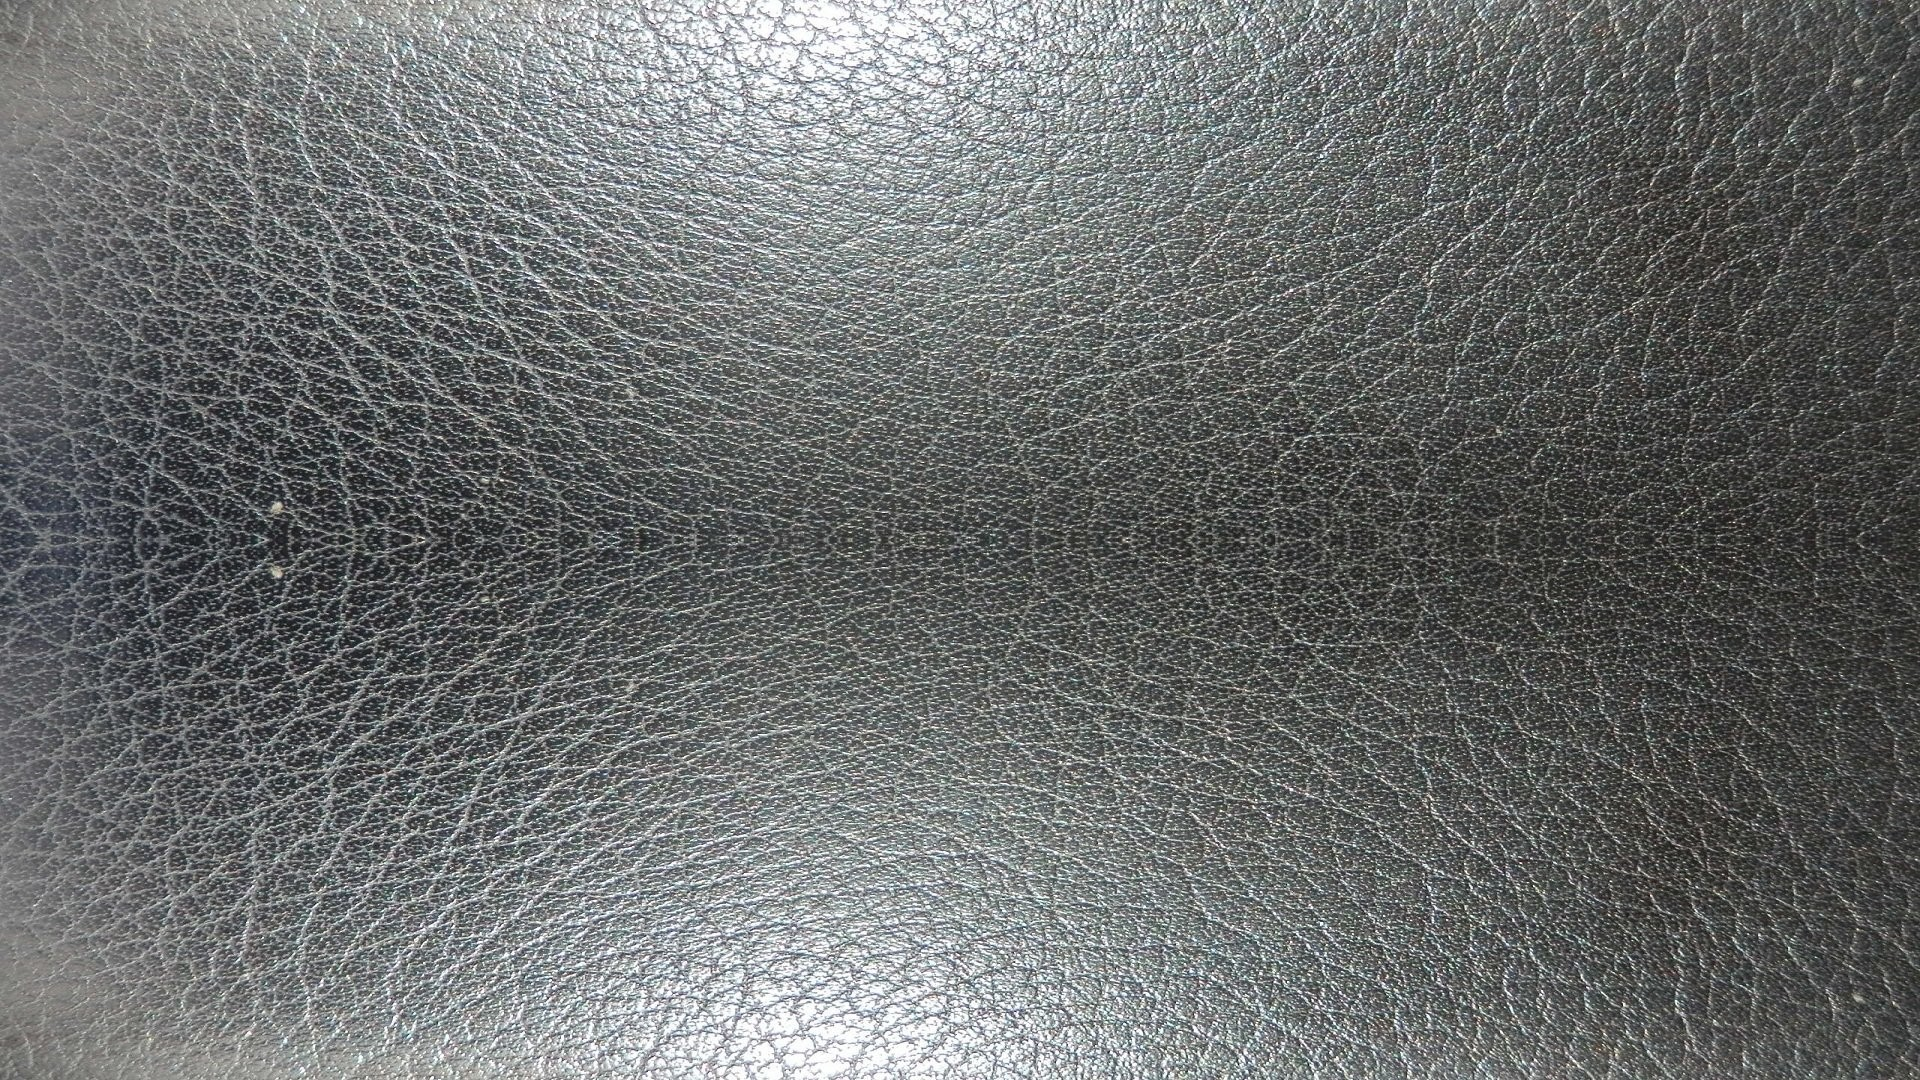 1920x1080 leather textures light silver background